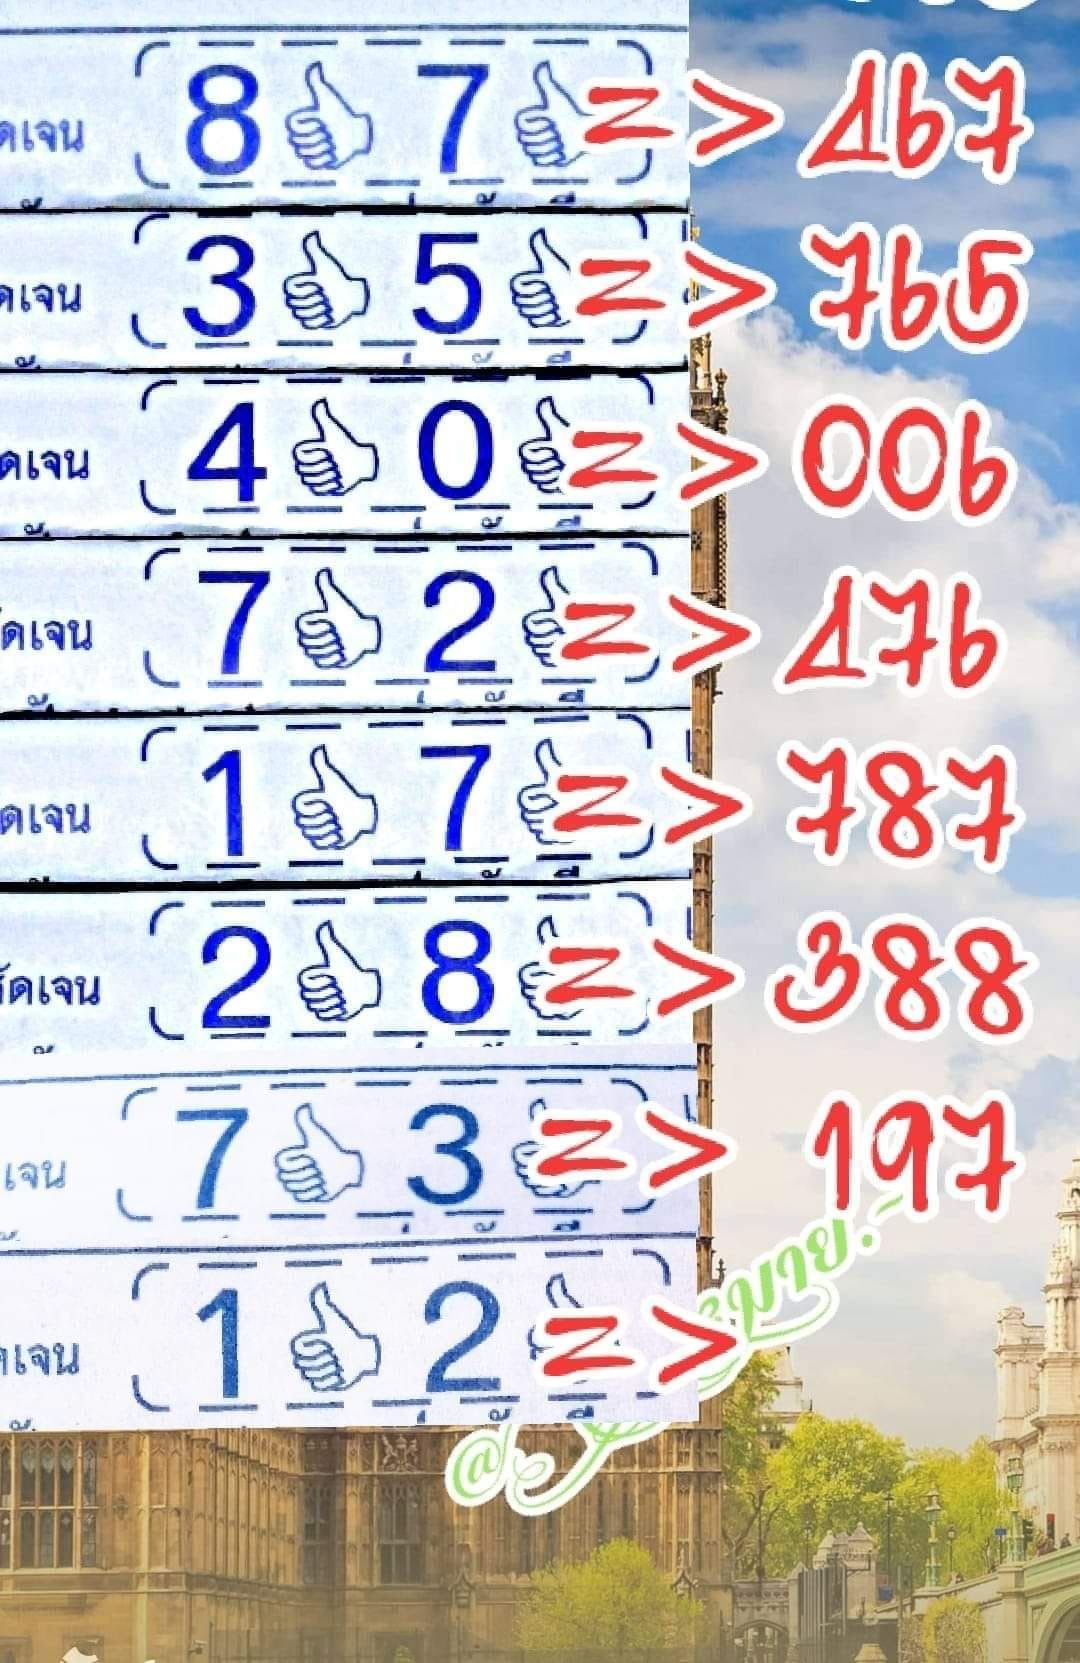 Pin By Aungnaingmoe On Lottery Tips With Images